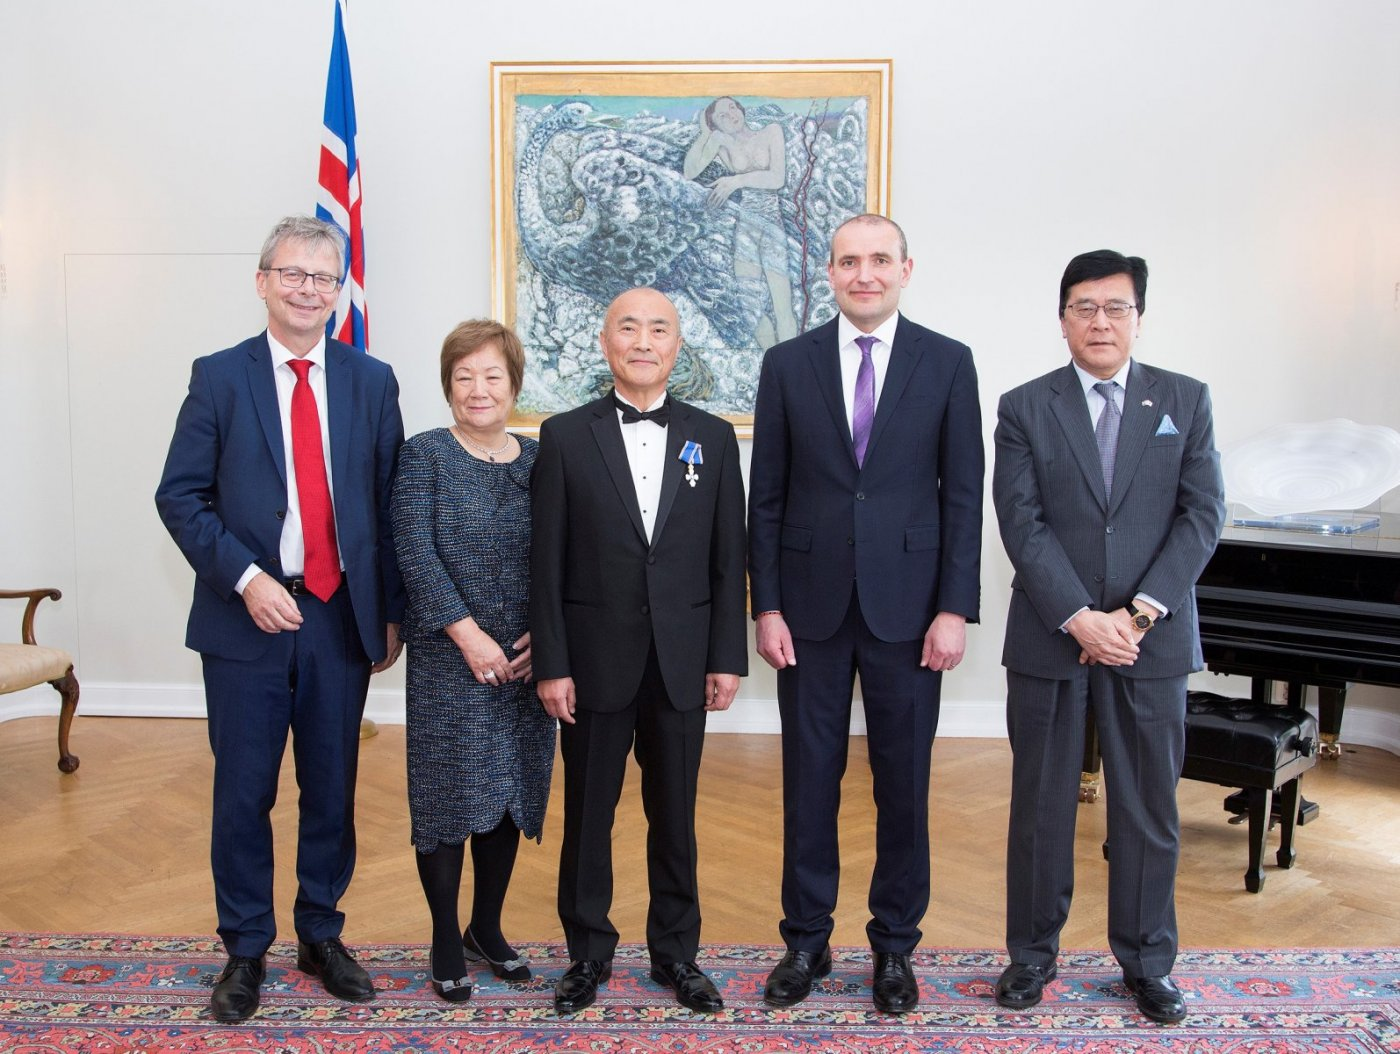 Mr. and Mrs. Watanabe with the President of Iceland, the Rector of the University of Iceland, and the Japanese Ambassador in Iceland. PHOTO/President's Office